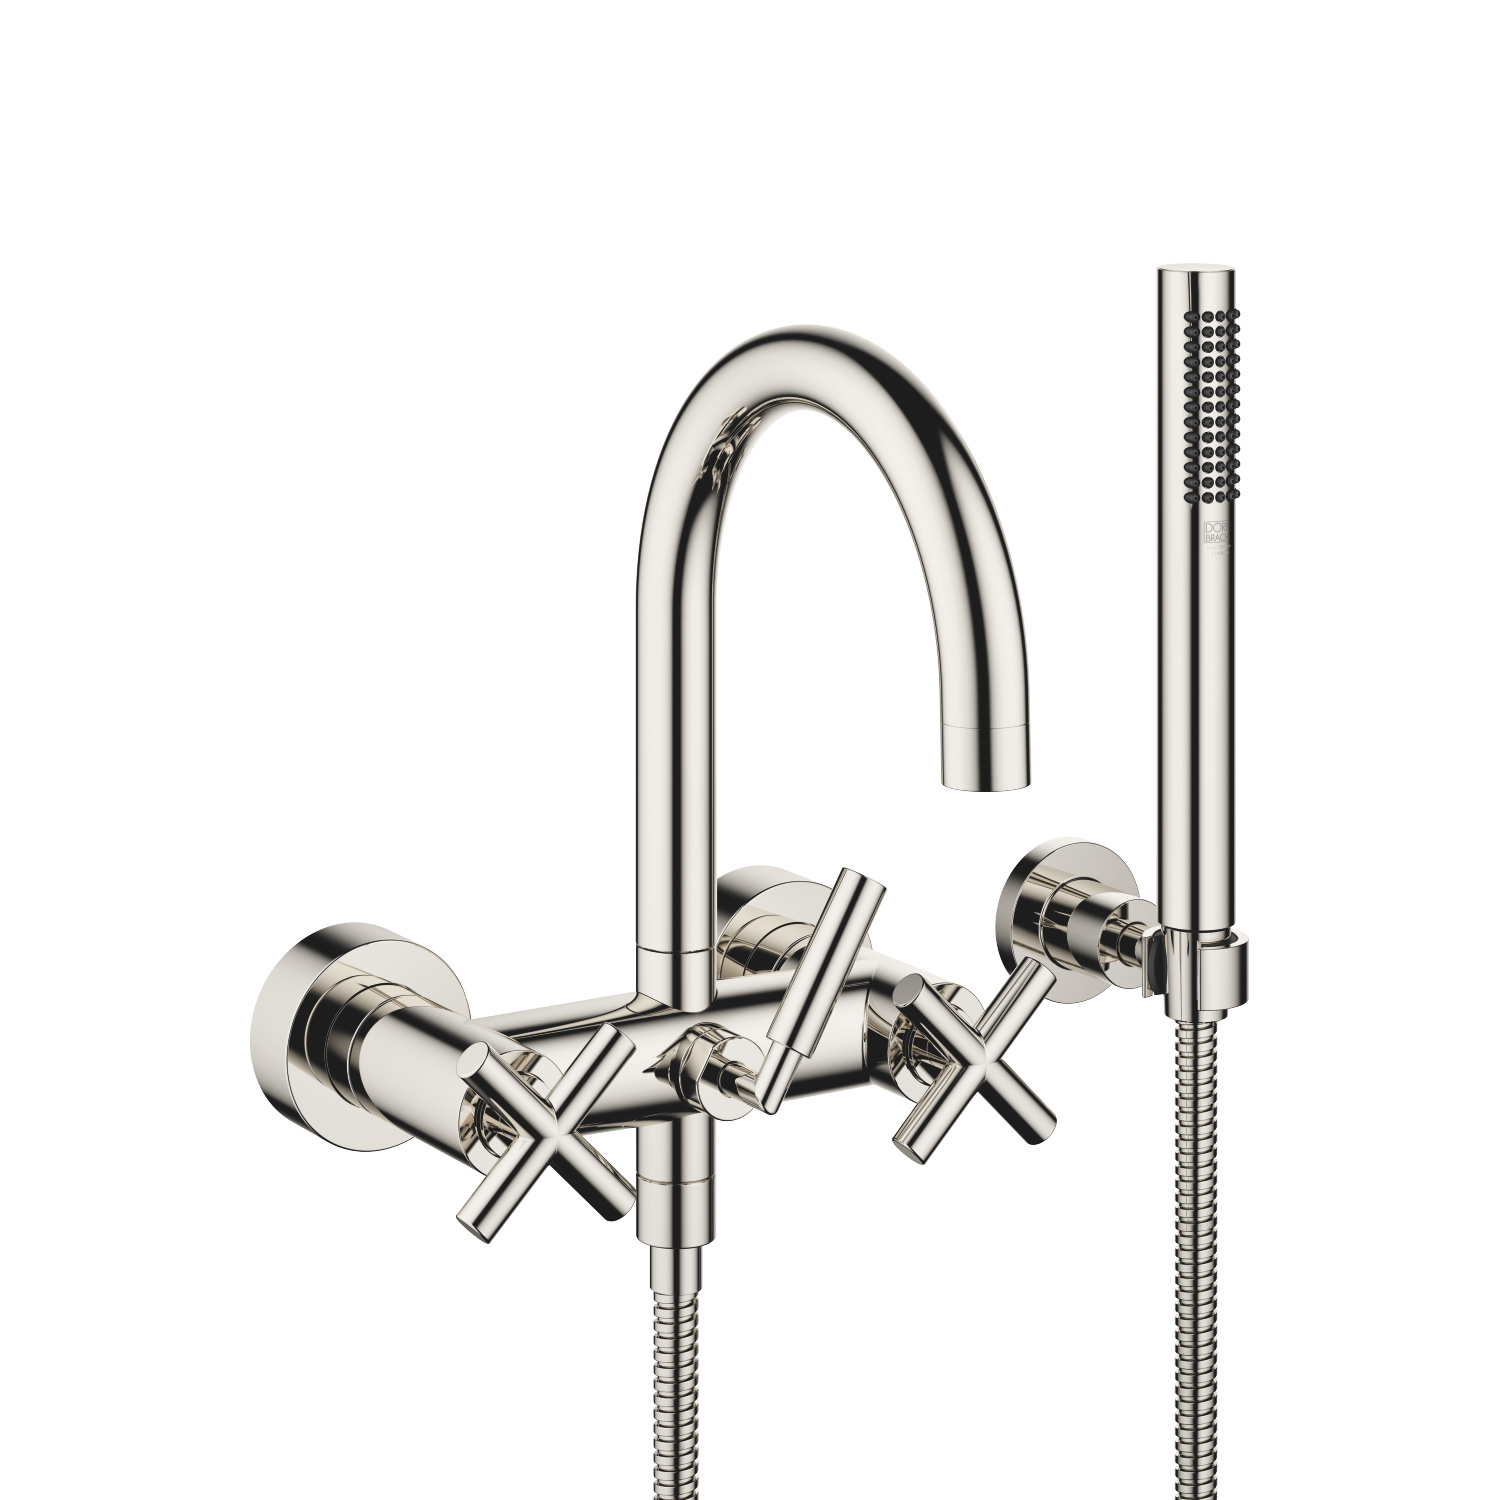 Bath mixer for wall mounting with hand shower set - platinum